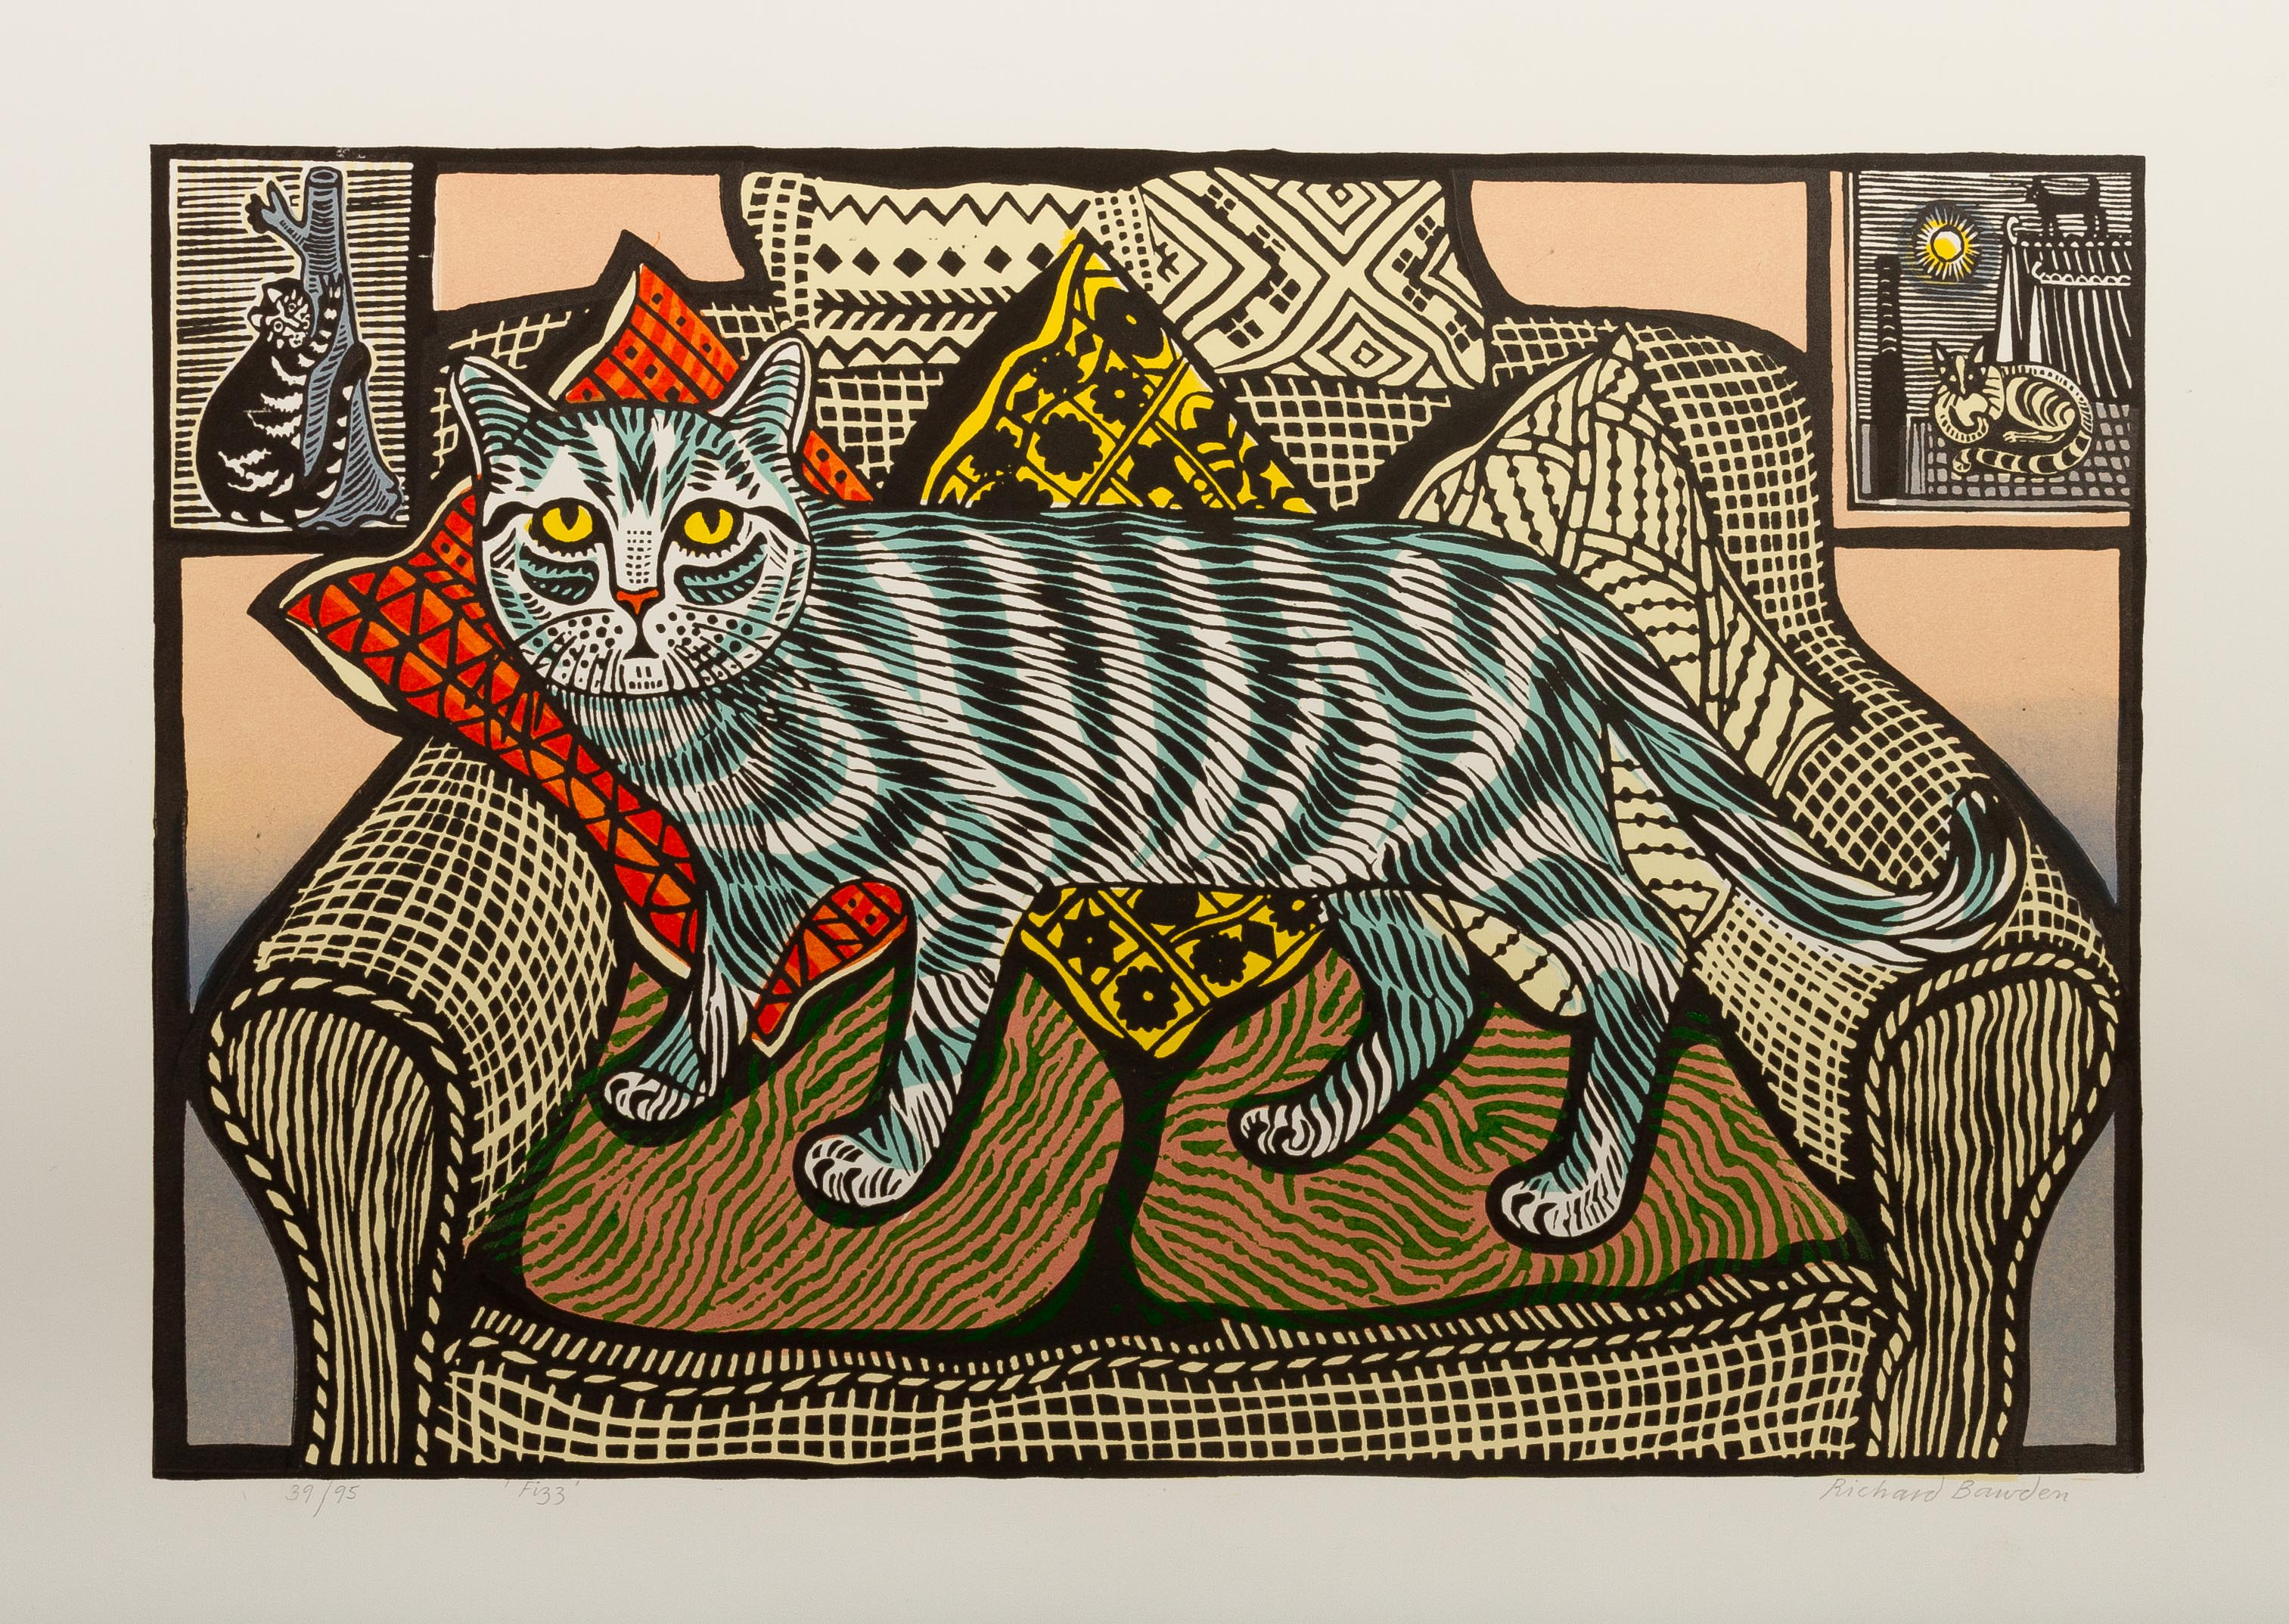 Fizz - linocut by Richard Bawden